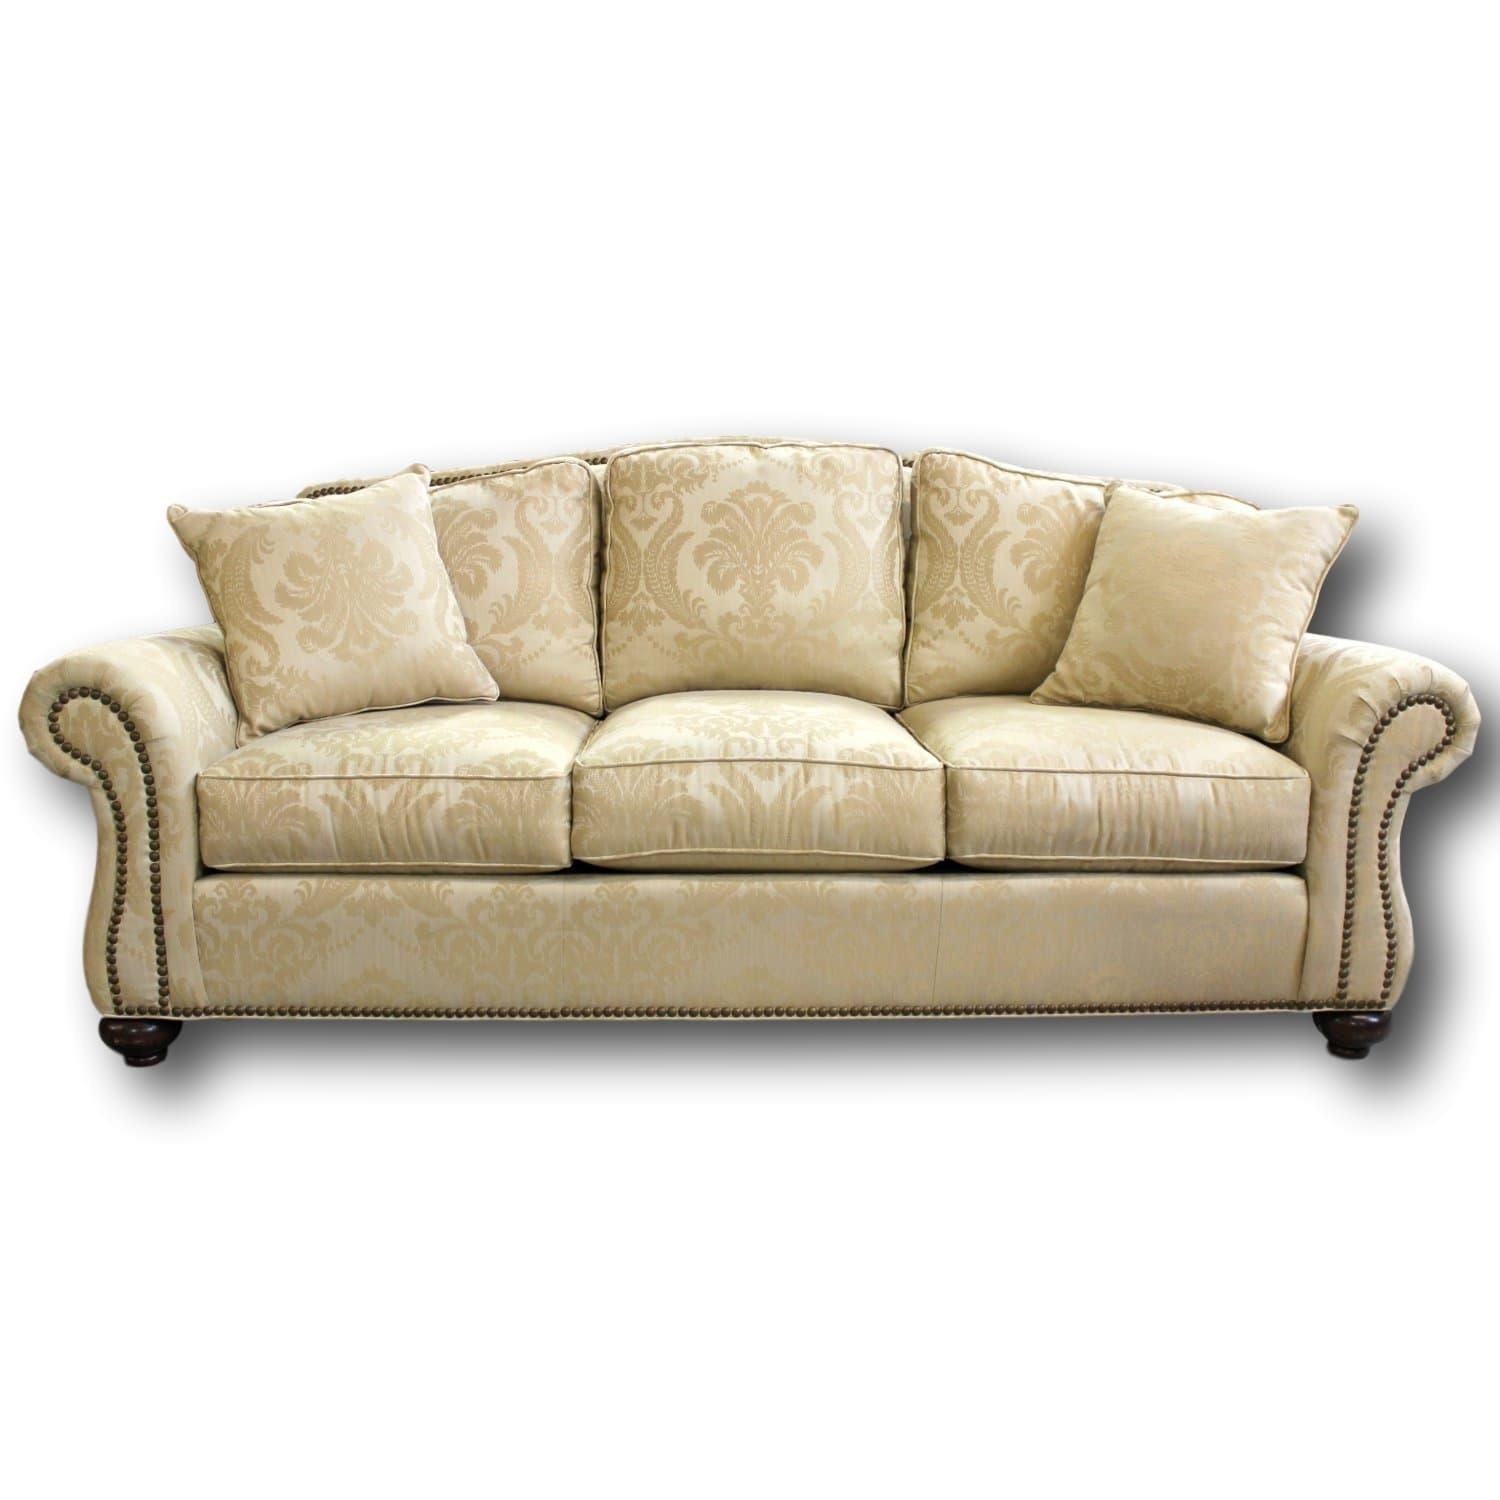 Upholstered Loveseats & Leather Sofas | Portland Or with regard to Alan White Loveseats